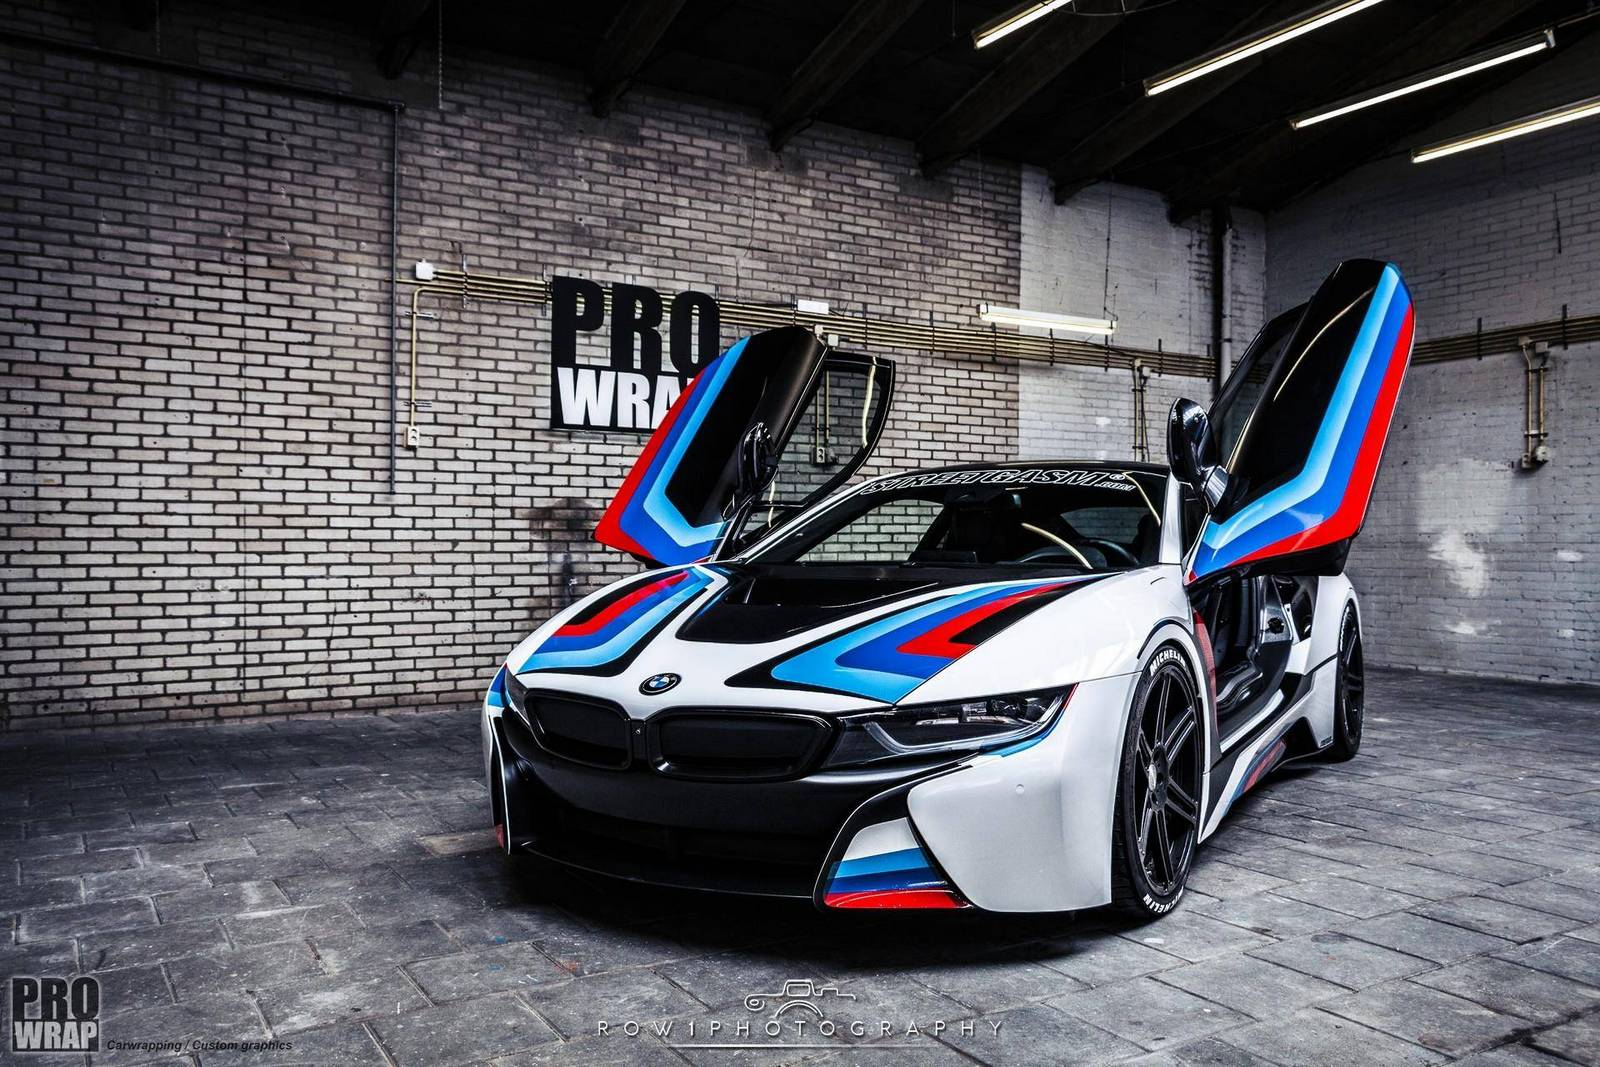 Audi R8 Cars Wallpapers Hd Custom Wrapped Bmw I8 By Prowrap In The Netherlands Gtspirit